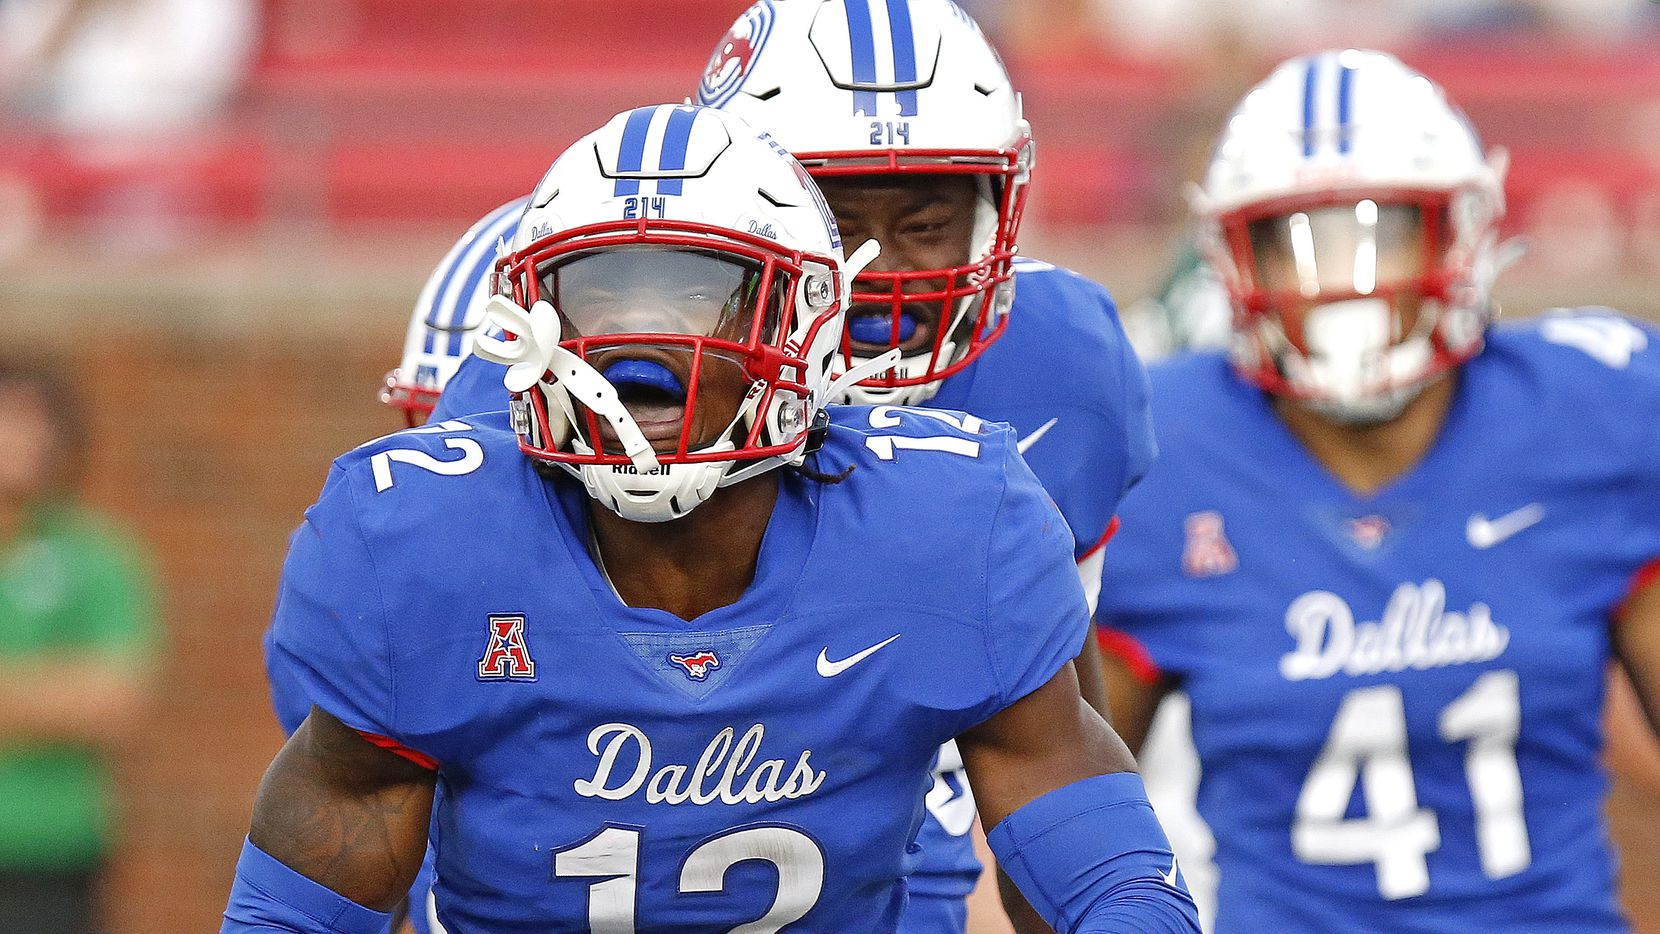 Southern Methodist Mustangs safety Isaiah Nwokobia (12) celebrates a turnover during the first half as SMU hosted UNT at Ford Stadium in Dallas on Saturday, September 11, 2021.